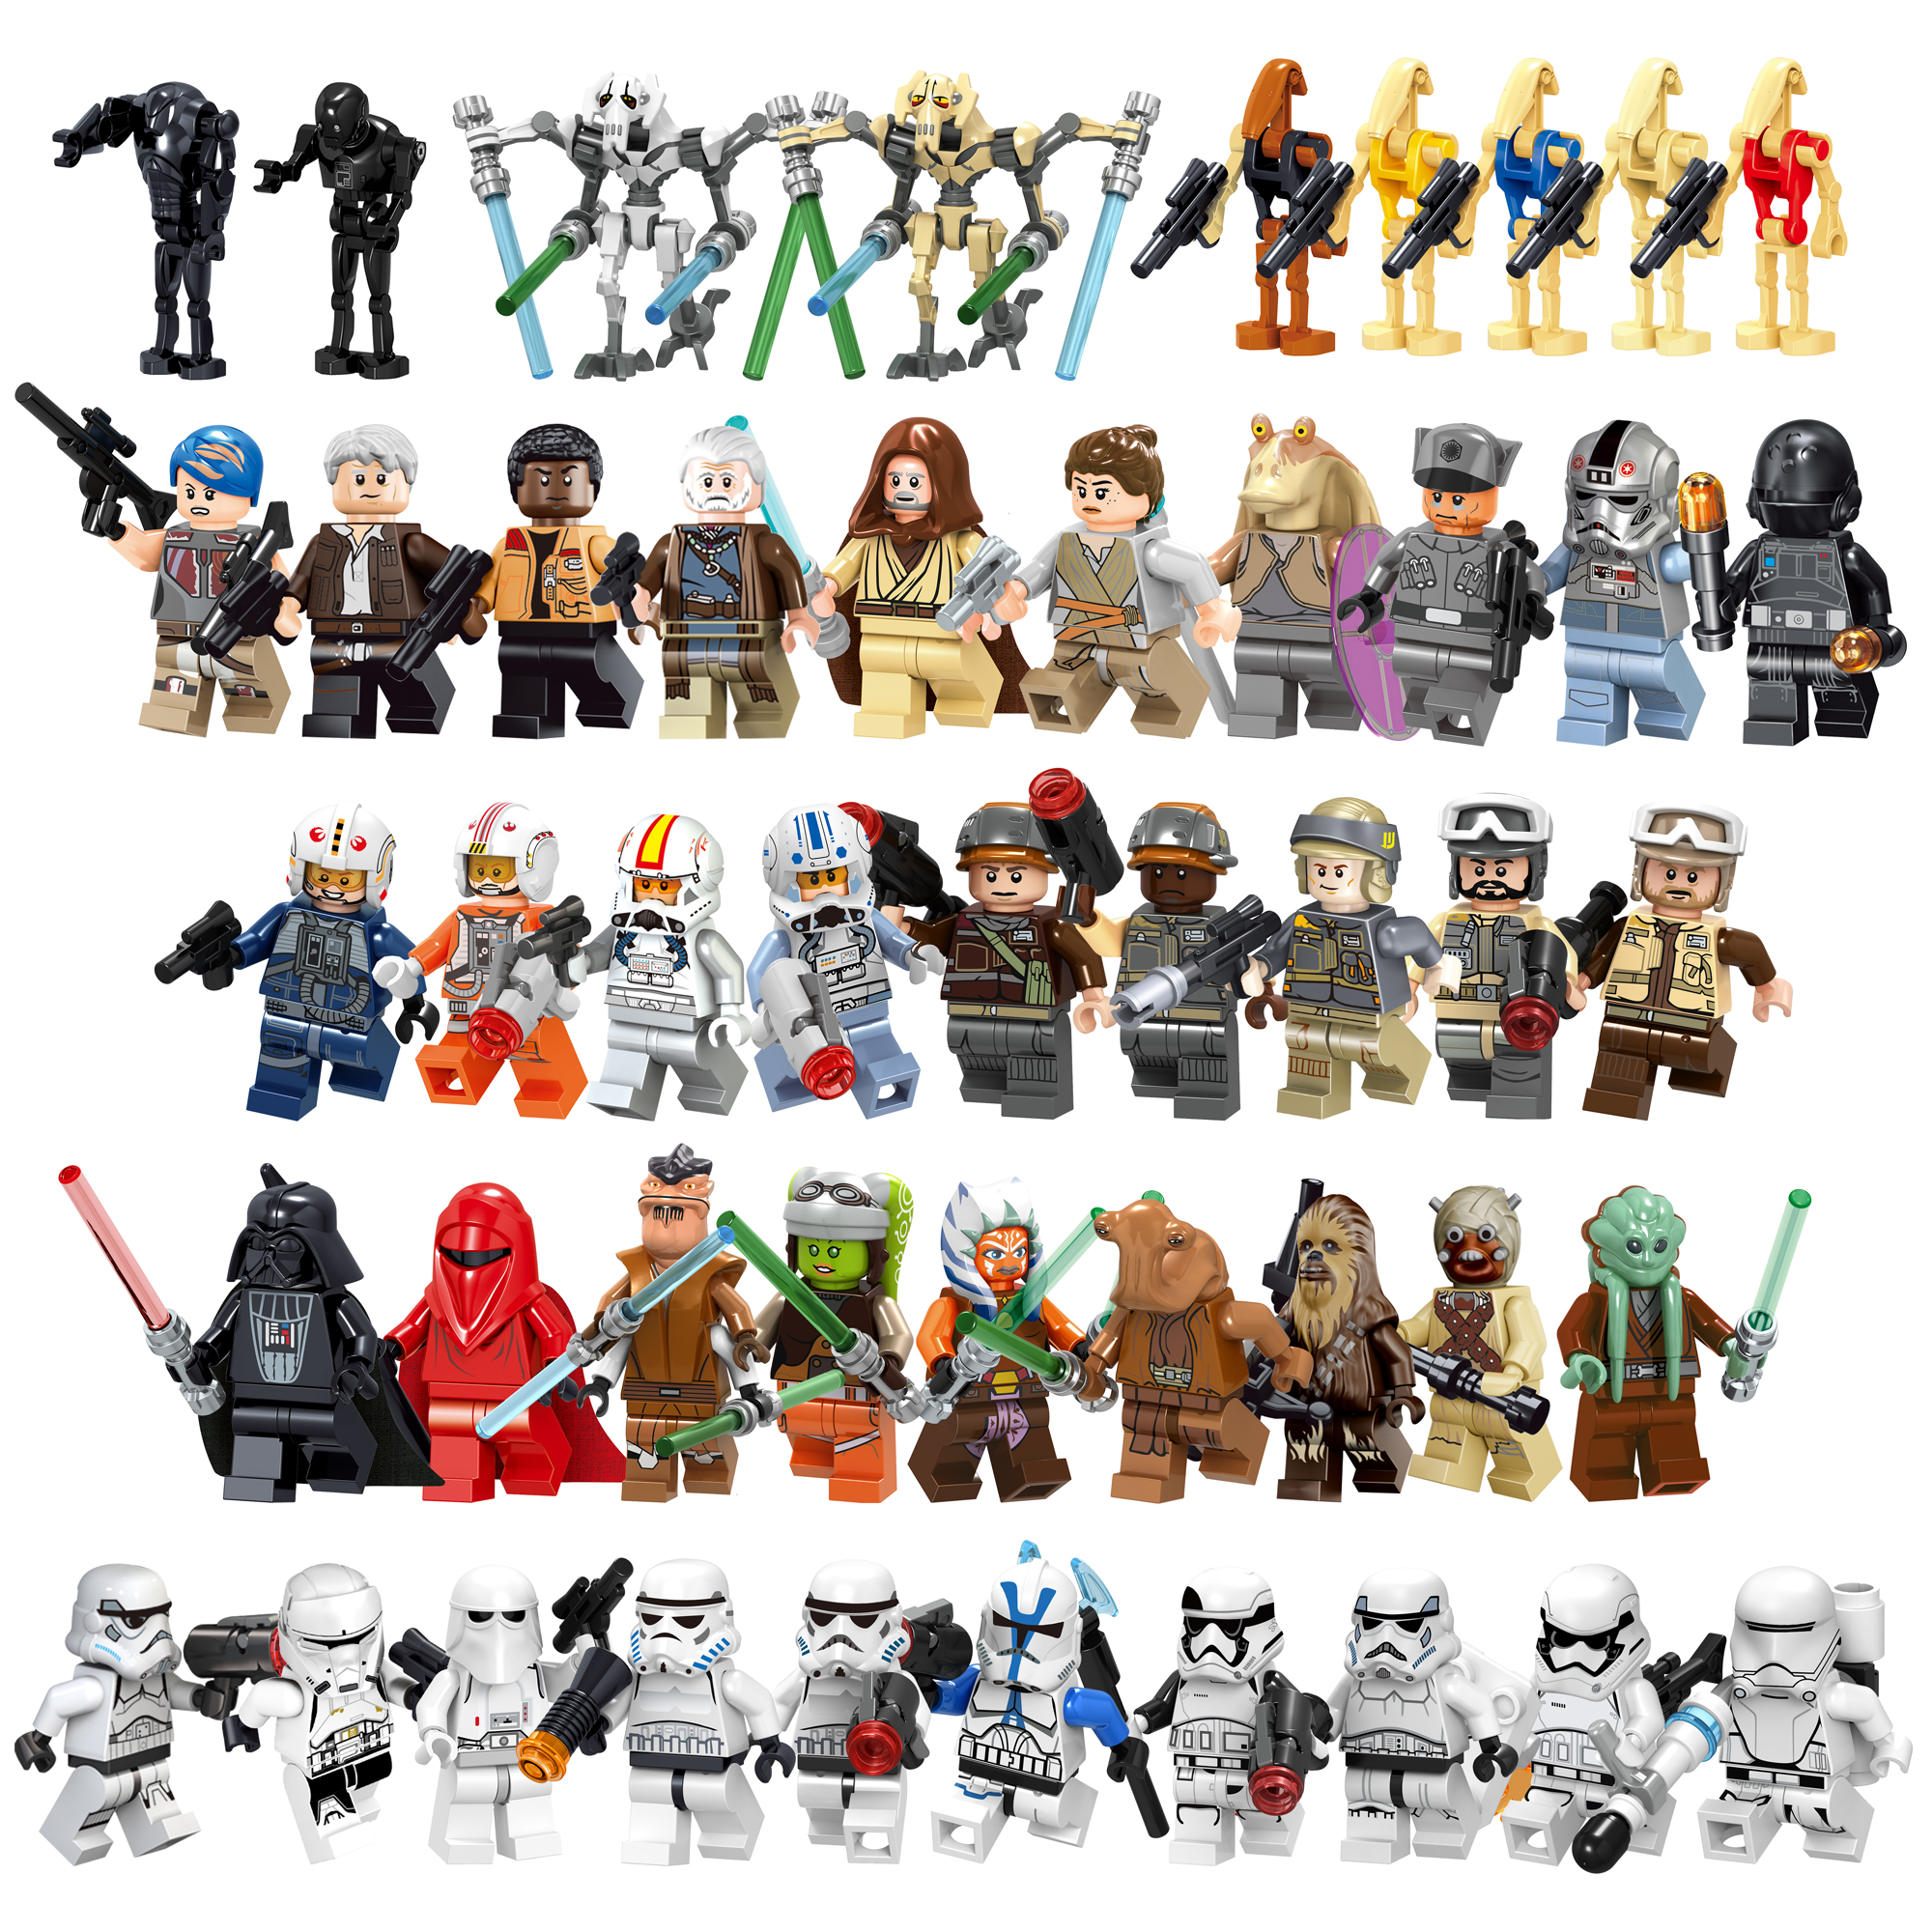 Star Wars Figures Luke Leia Trooper Han Solo Maz Anakin Darth Vader Yoda Obi Wan Weapon Figure Building Blocks Toys For Children